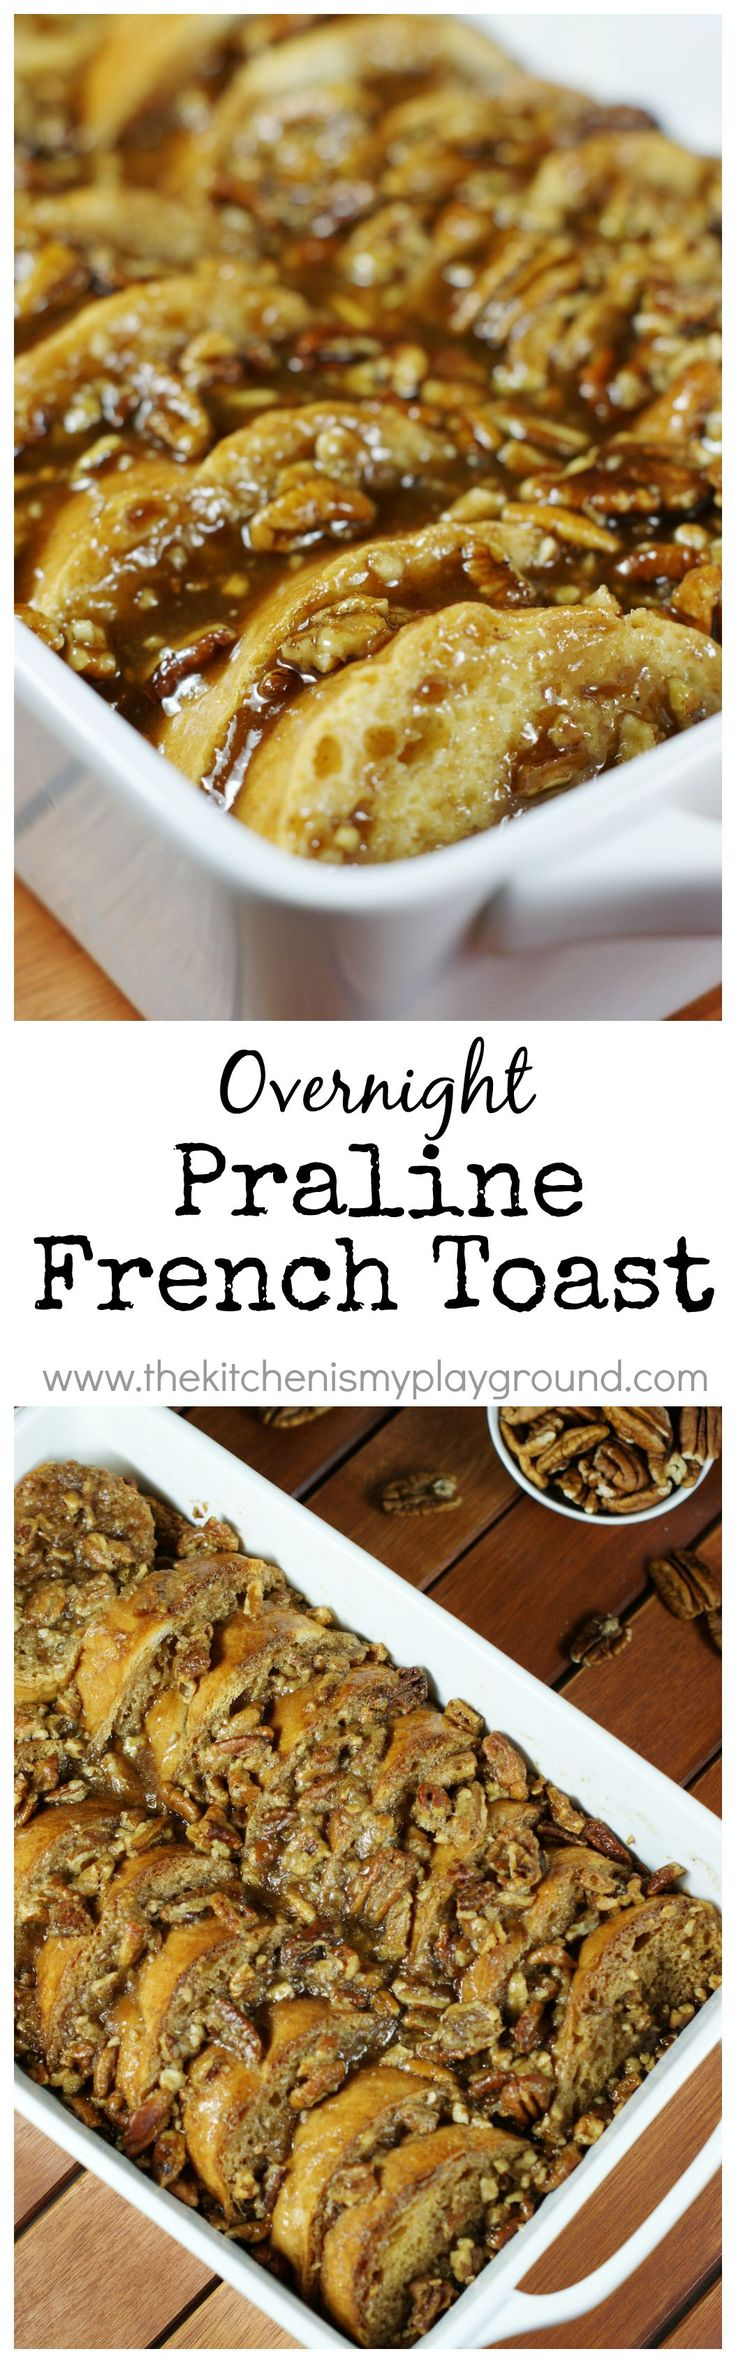 Overnight Praline French Toast ~ a decadently delicious assemble-ahead brunch or breakfast treat! www.thekitchenism...